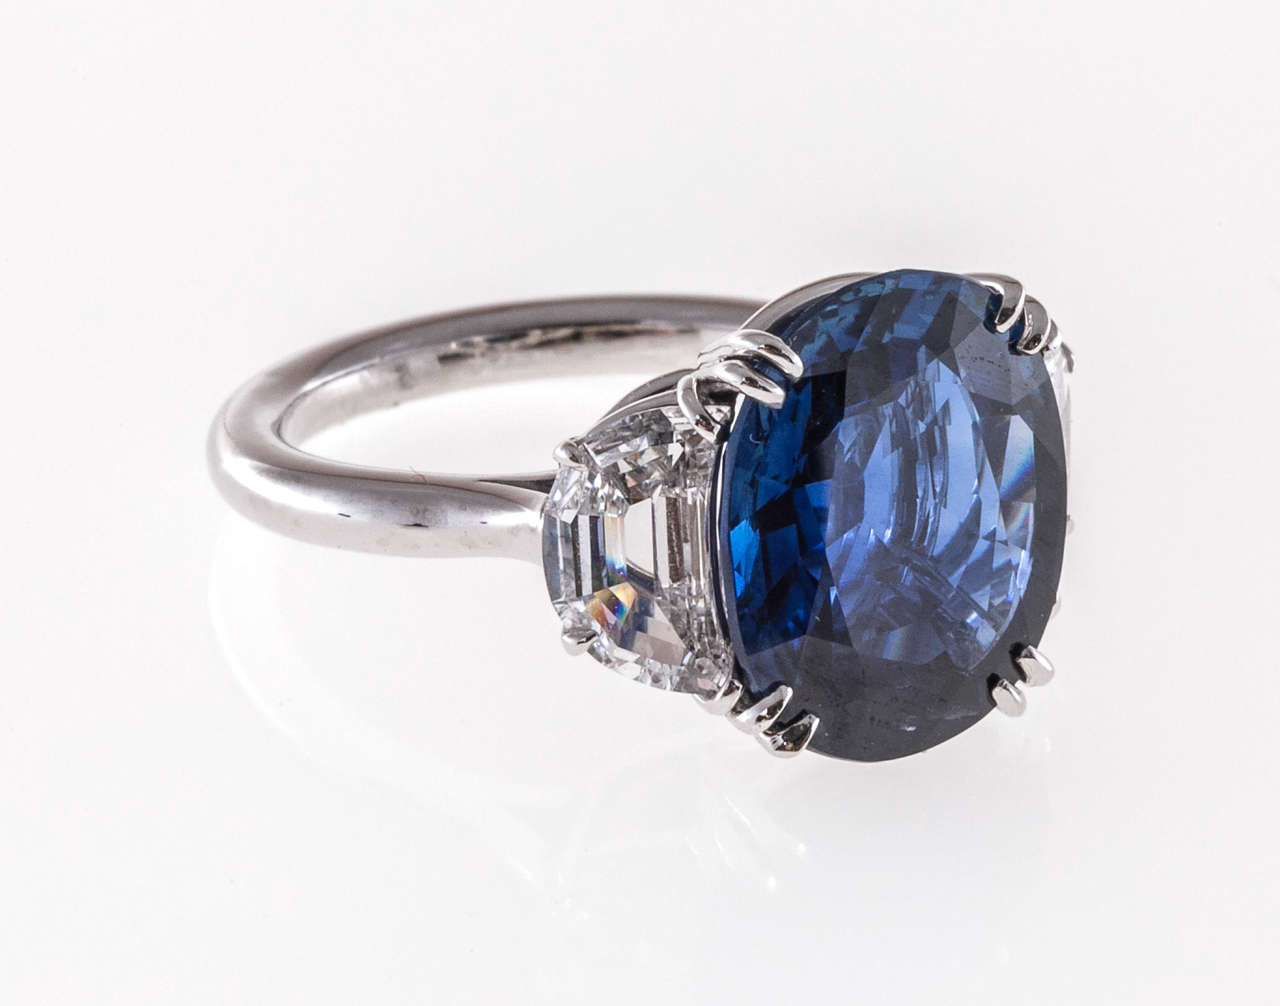 cocktail sapphire accents diamond o sap rings bijoux in ring shank cut stone majesty blue split gemstone with multi round w white ov oval gold prong halo